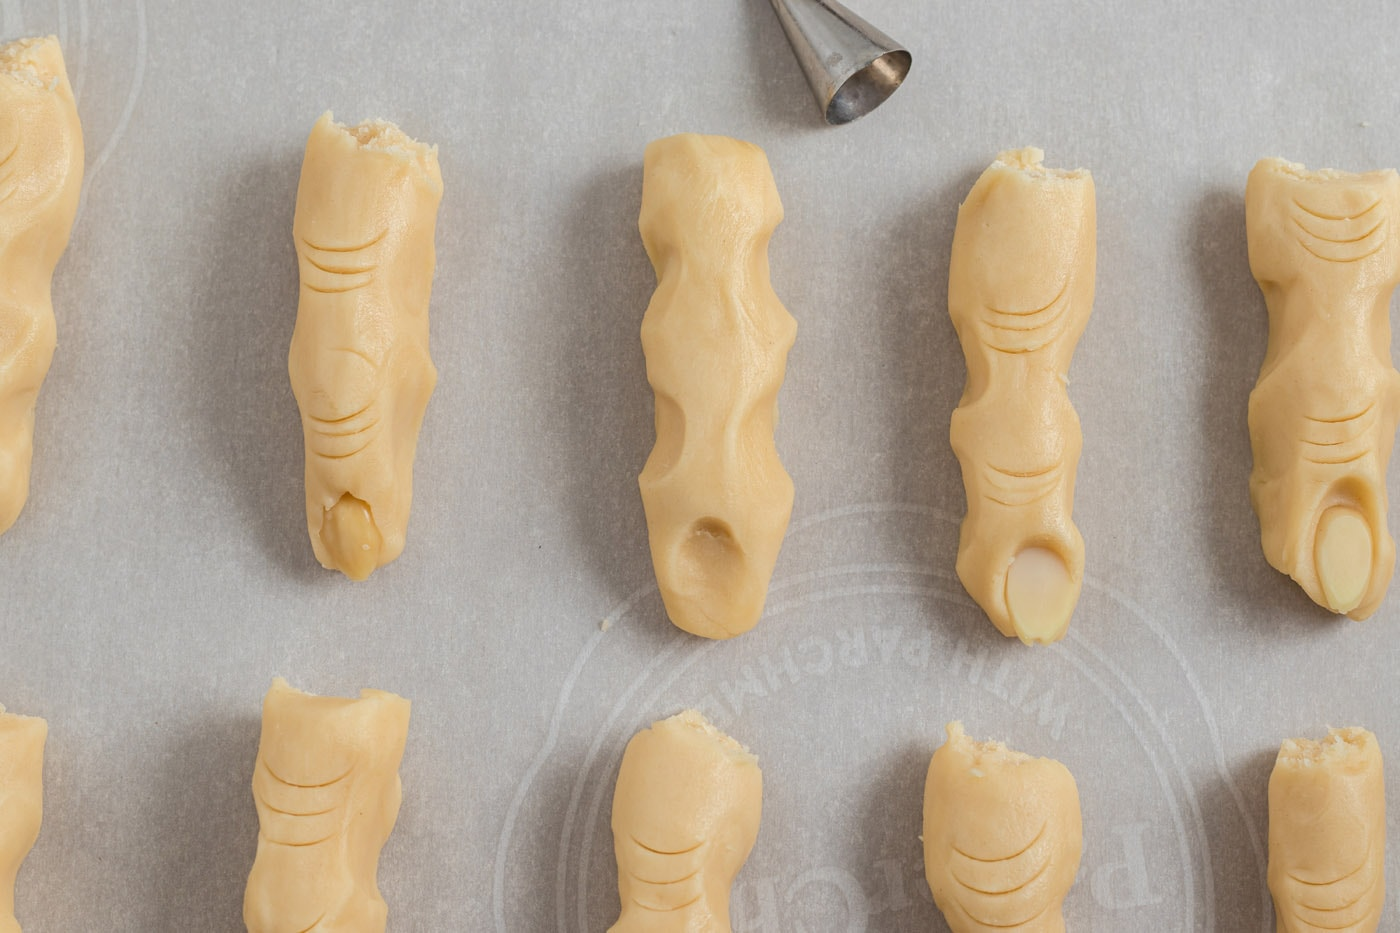 fingernail indents in cookie dough